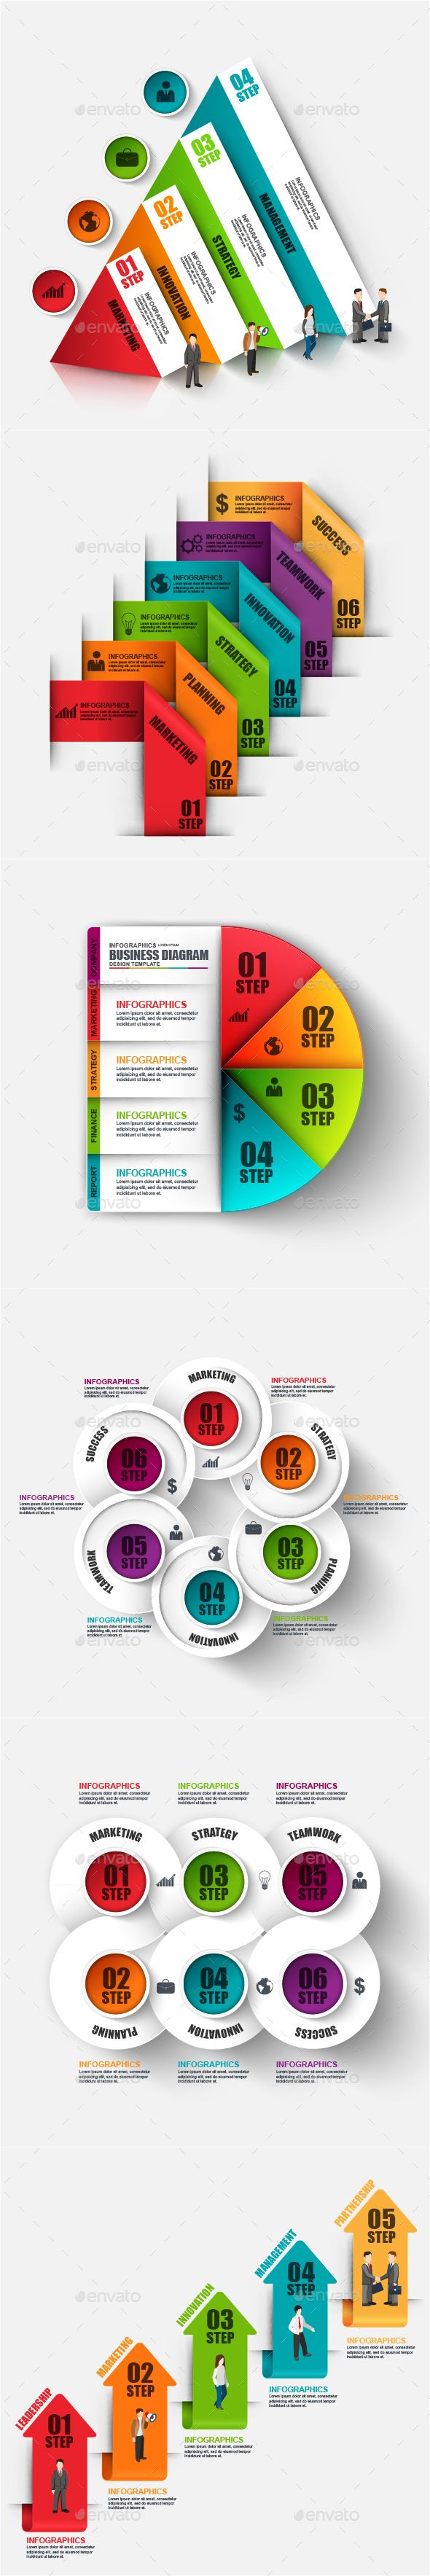 Set of Abstract 3D Digital Business Infographic — Vector EPS #3d #teamwork • Available here → https://graphicriver.net/item/set-of-abstract-3d-digital-business-infographic/17833390?ref=pxcr